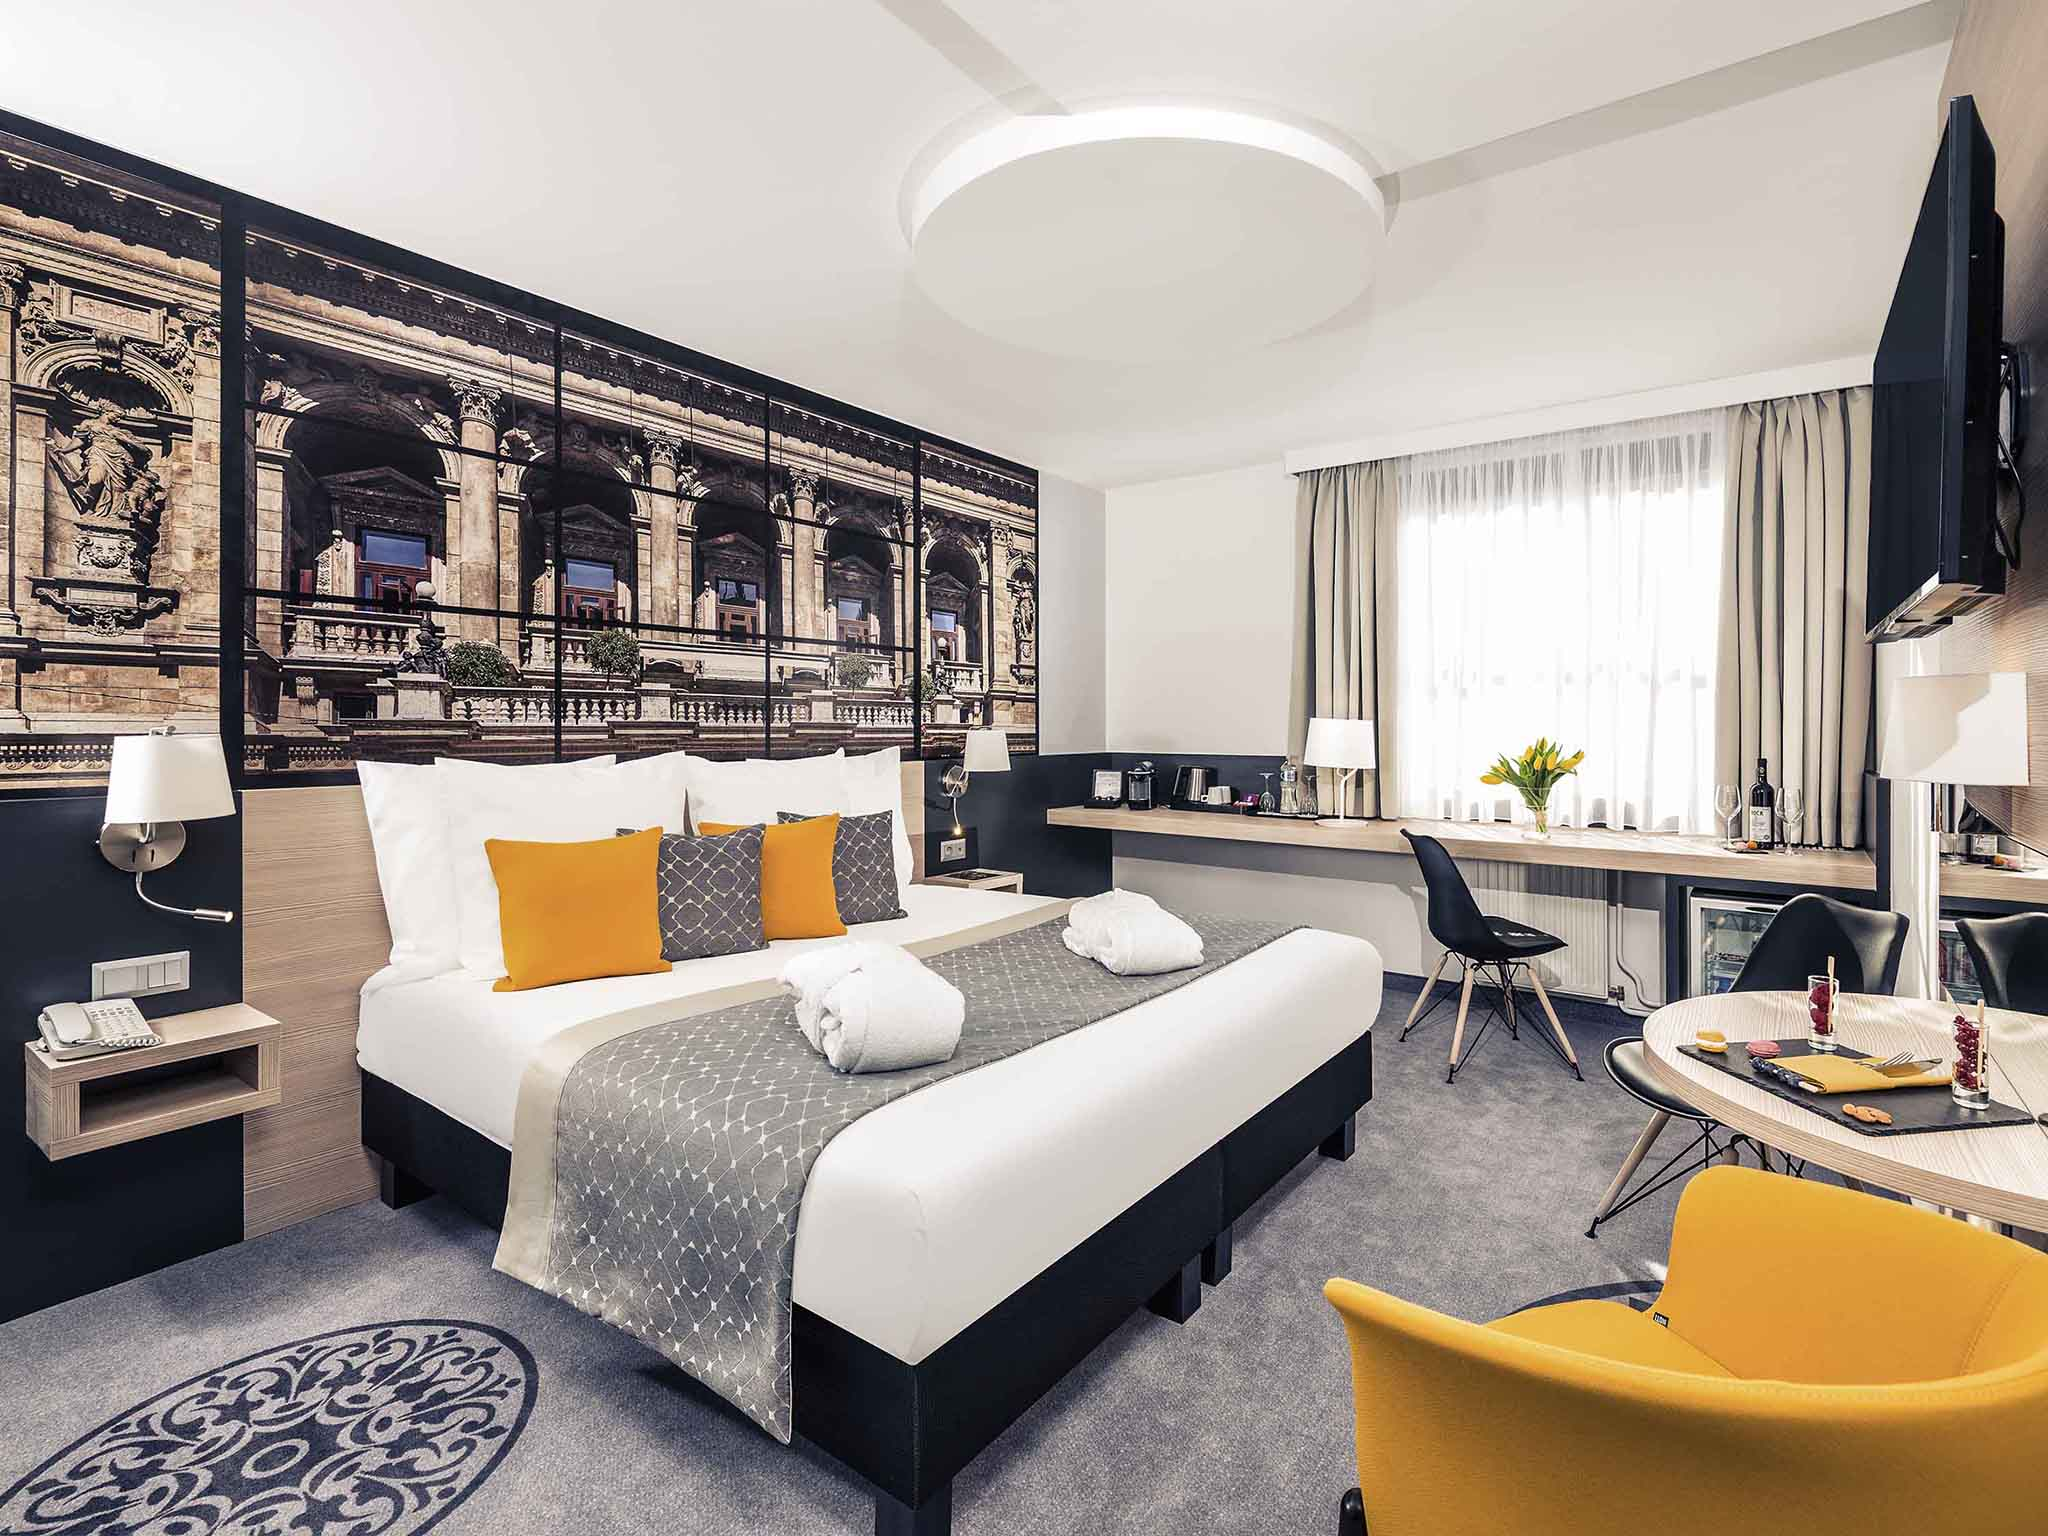 Hotel – Mercure Budapest City Center Hotel